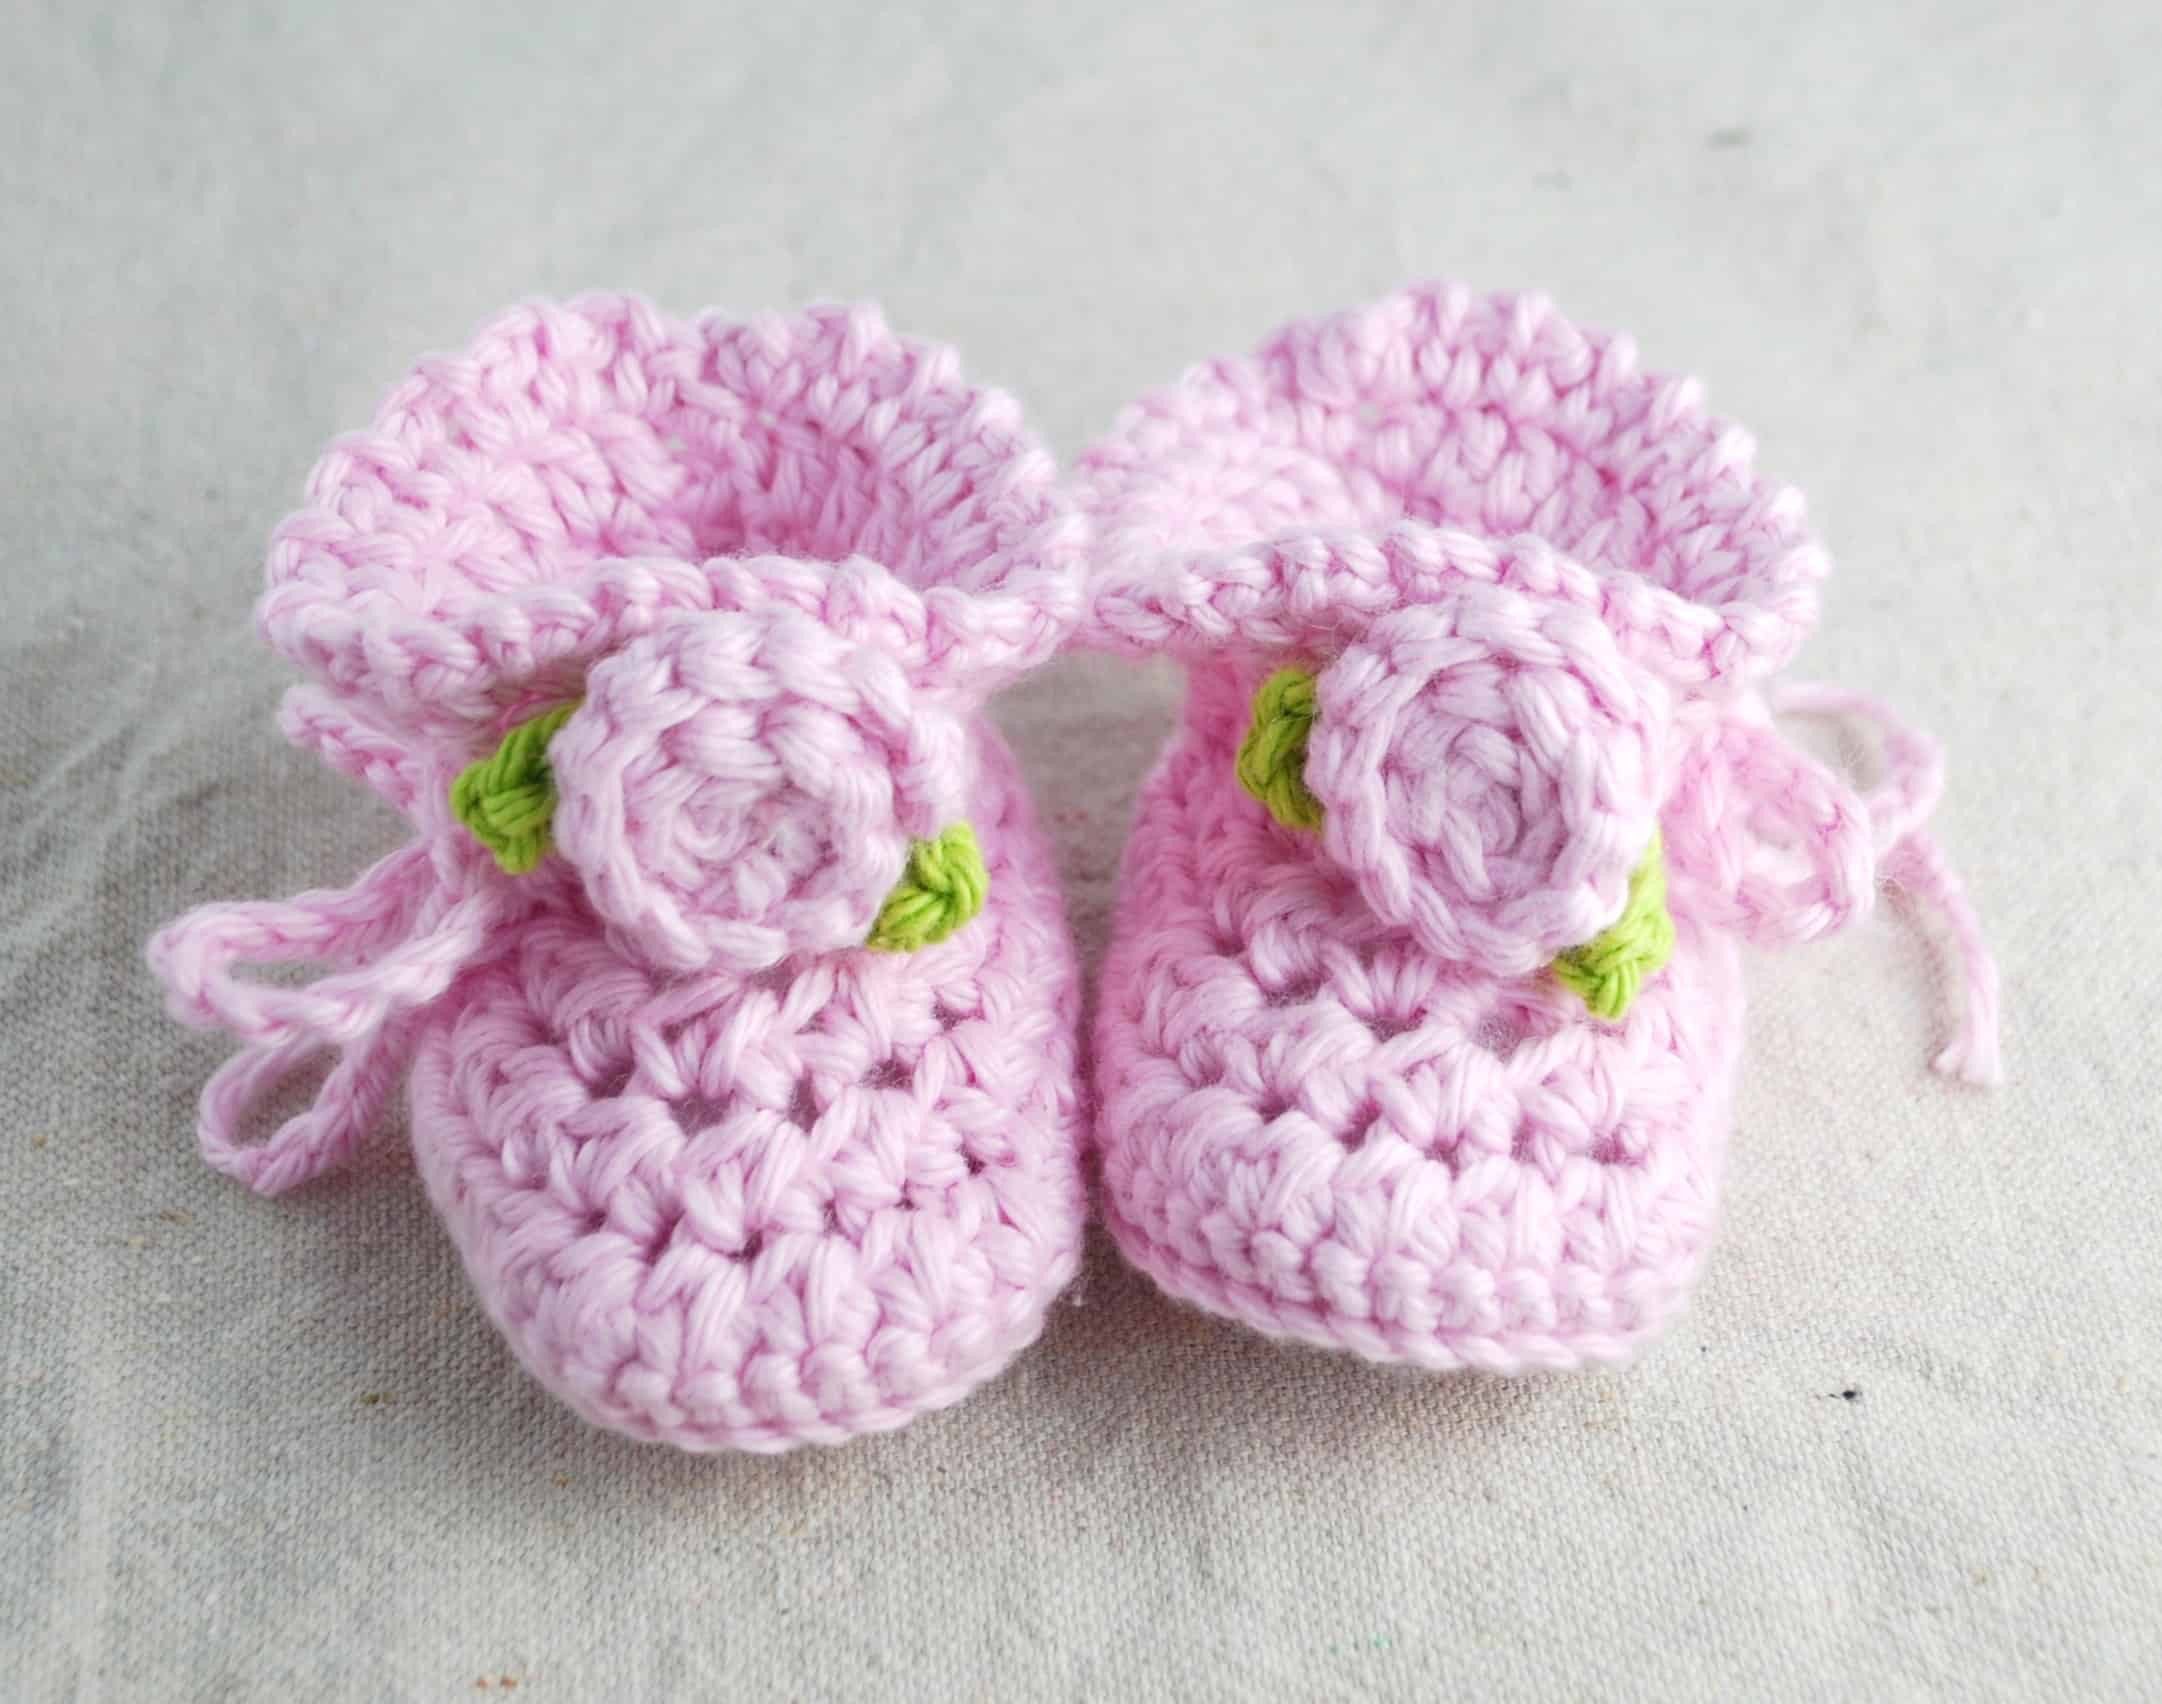 Luxury Crochet Baby Booties with Rosettes Creations by Kara Crochet Booties Pattern Of Unique 49 Ideas Crochet Booties Pattern